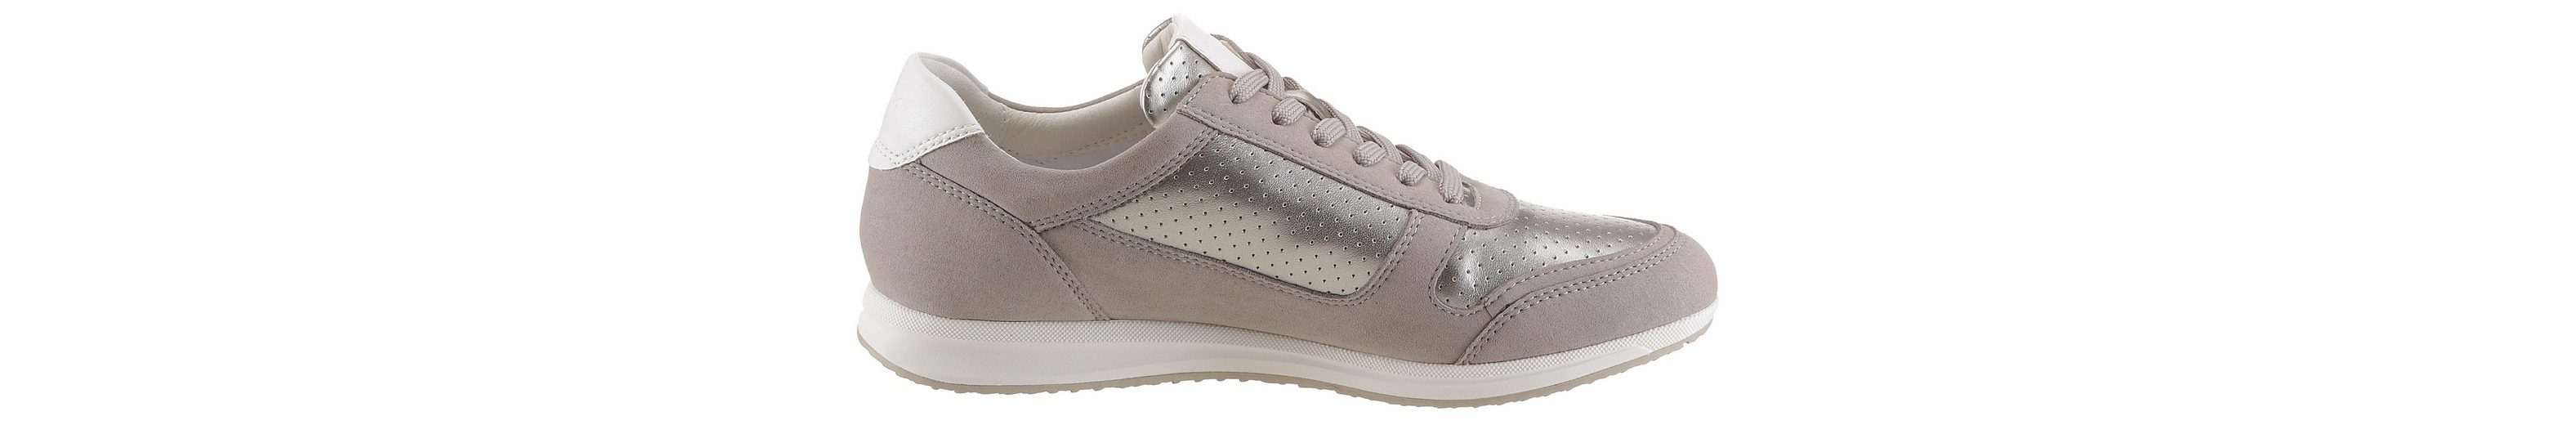 Geox AVERY Sneaker, mit feiner Perforation